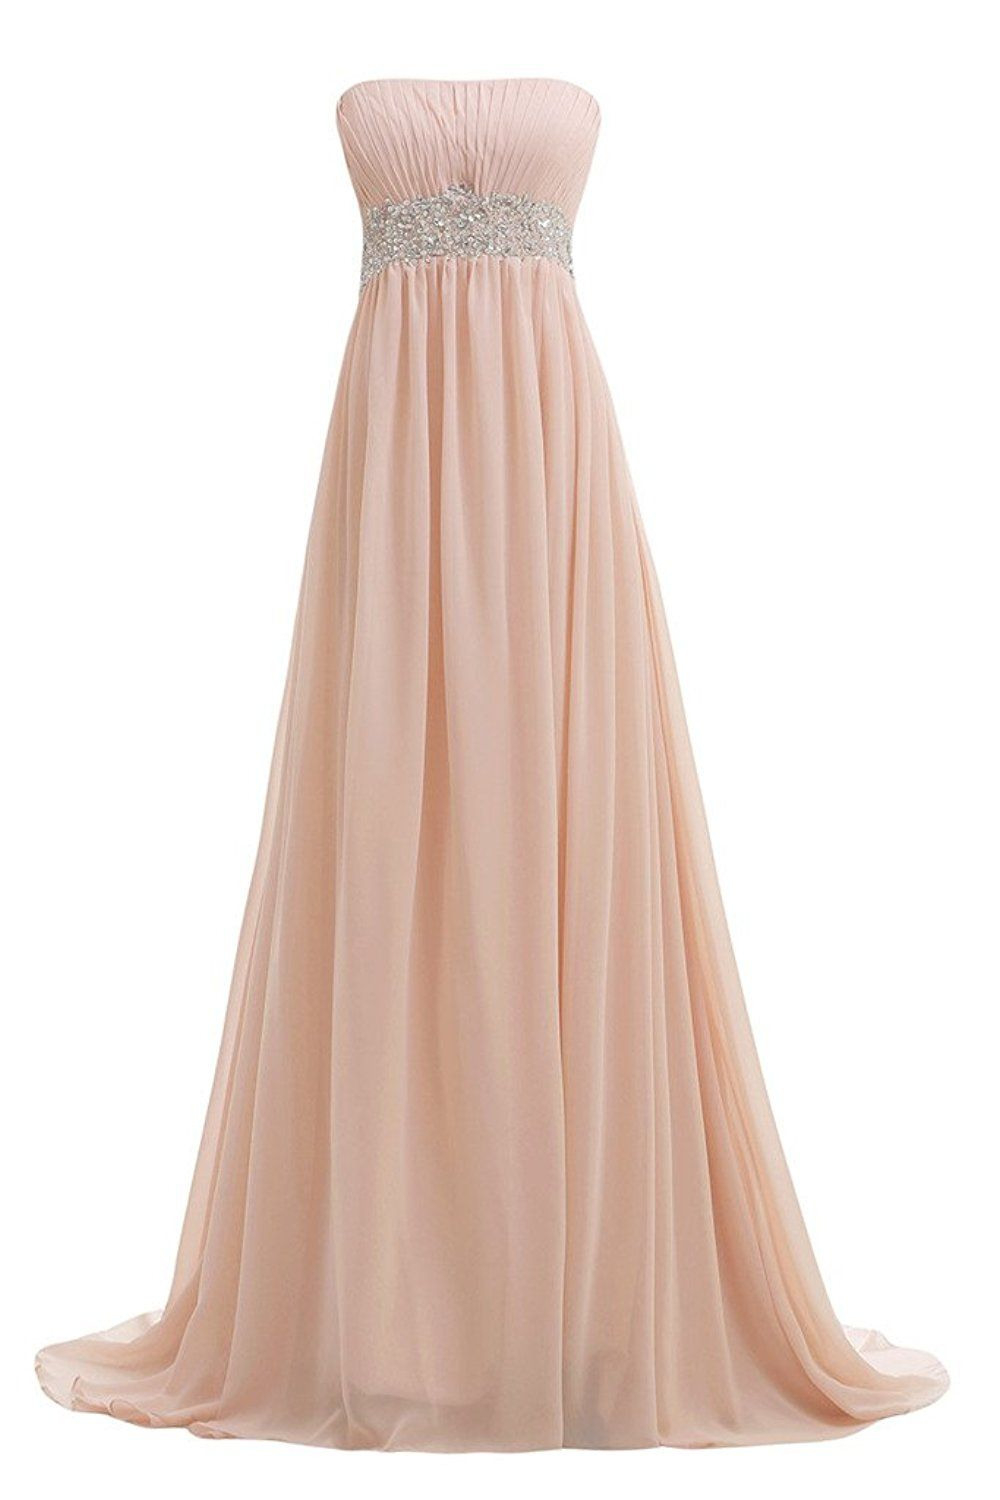 13 Coolste Amazon Abendkleid Spezialgebiet Leicht Amazon Abendkleid Stylish